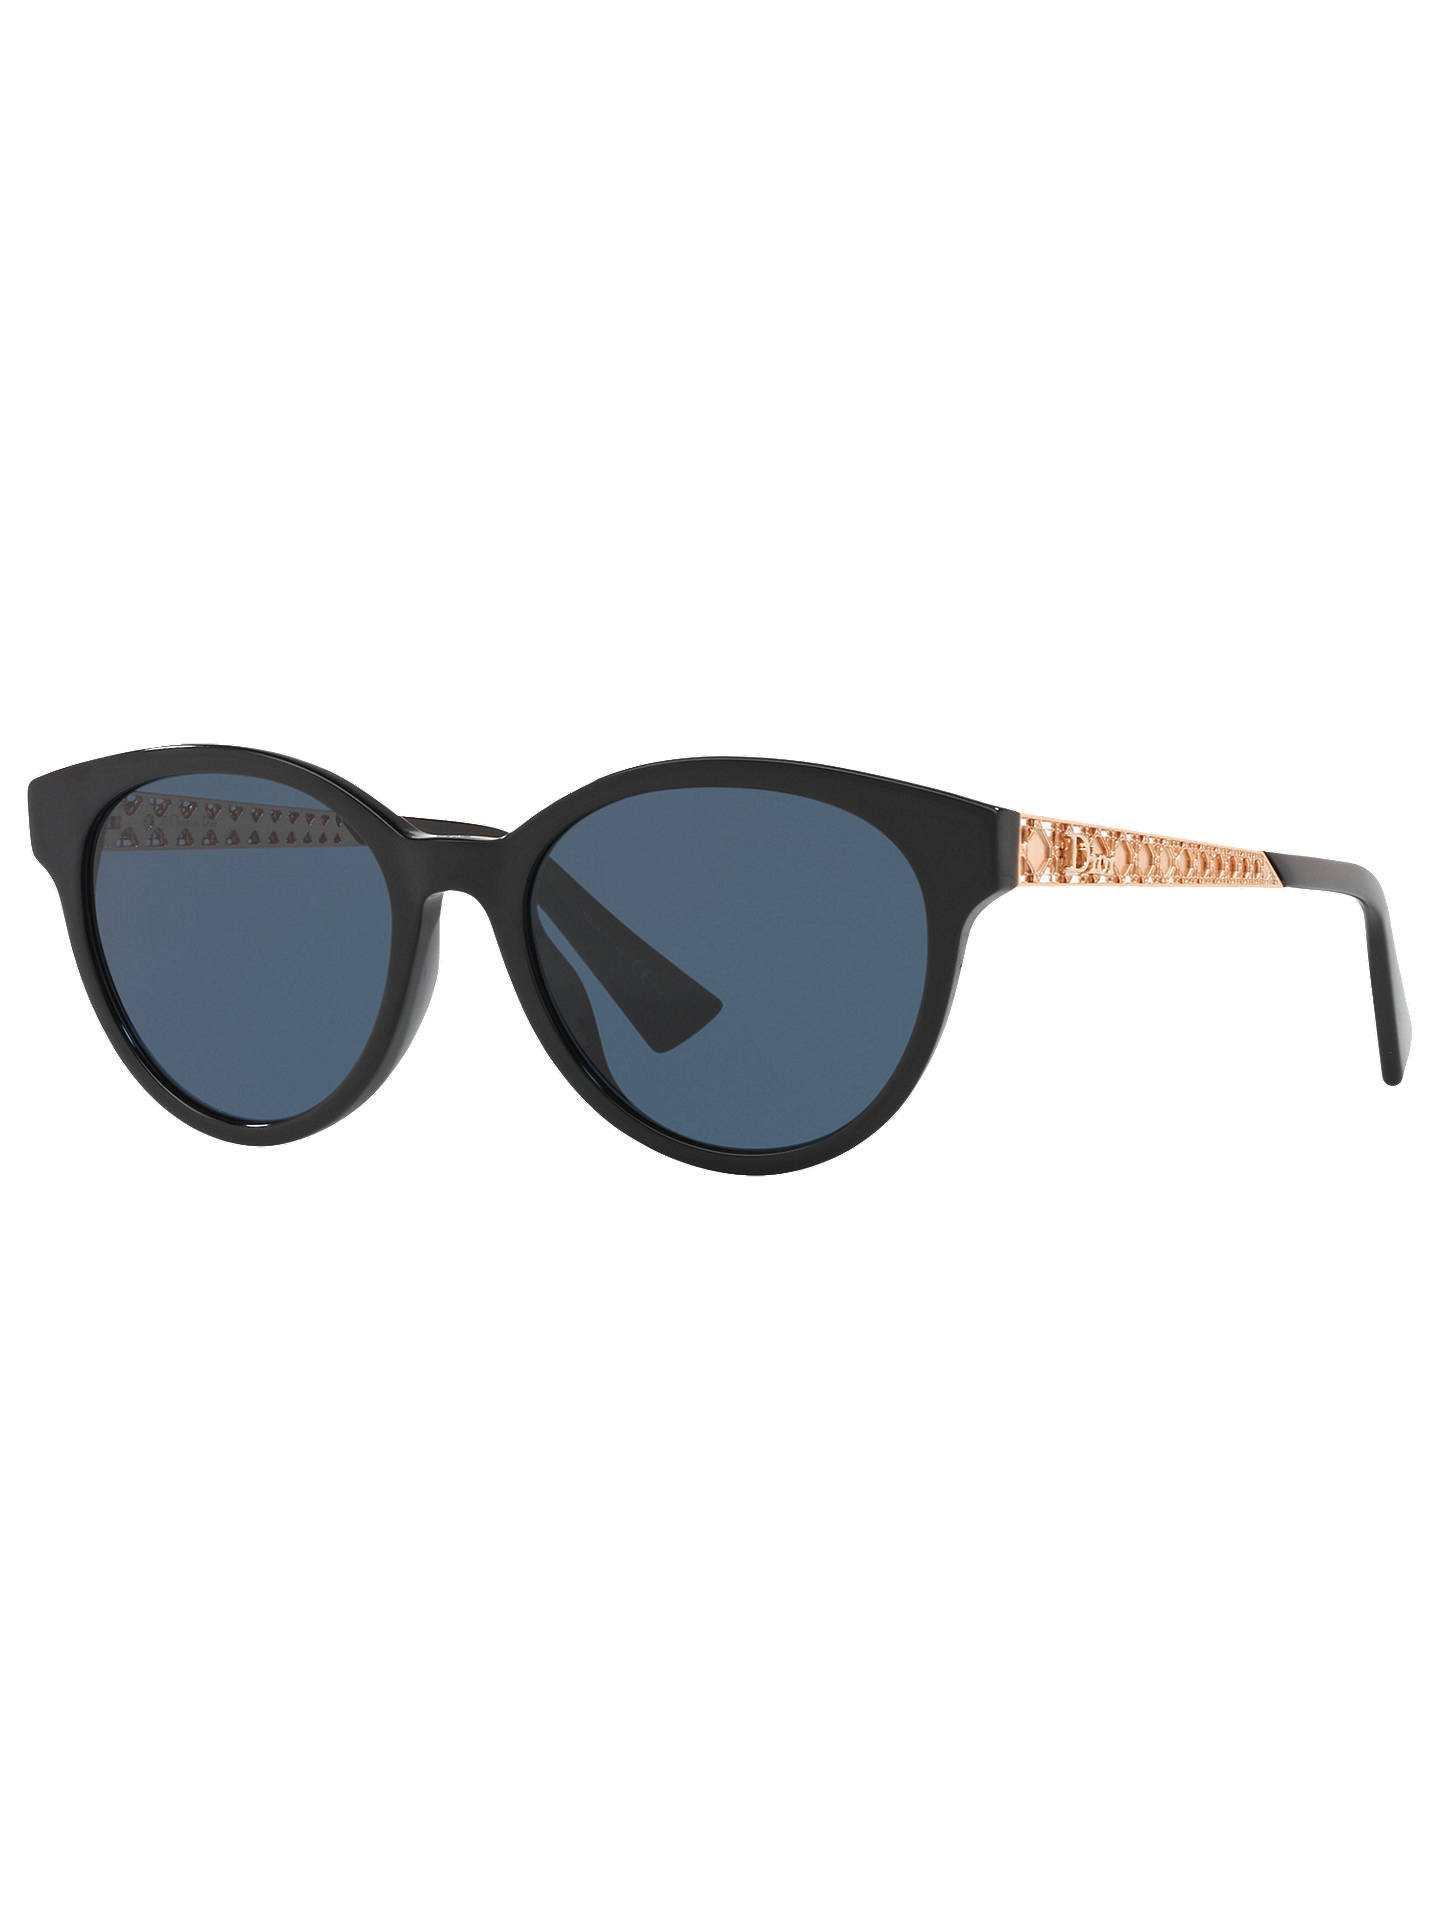 6d3347fae975 Buy Dior Diorama Oval Sunglasses